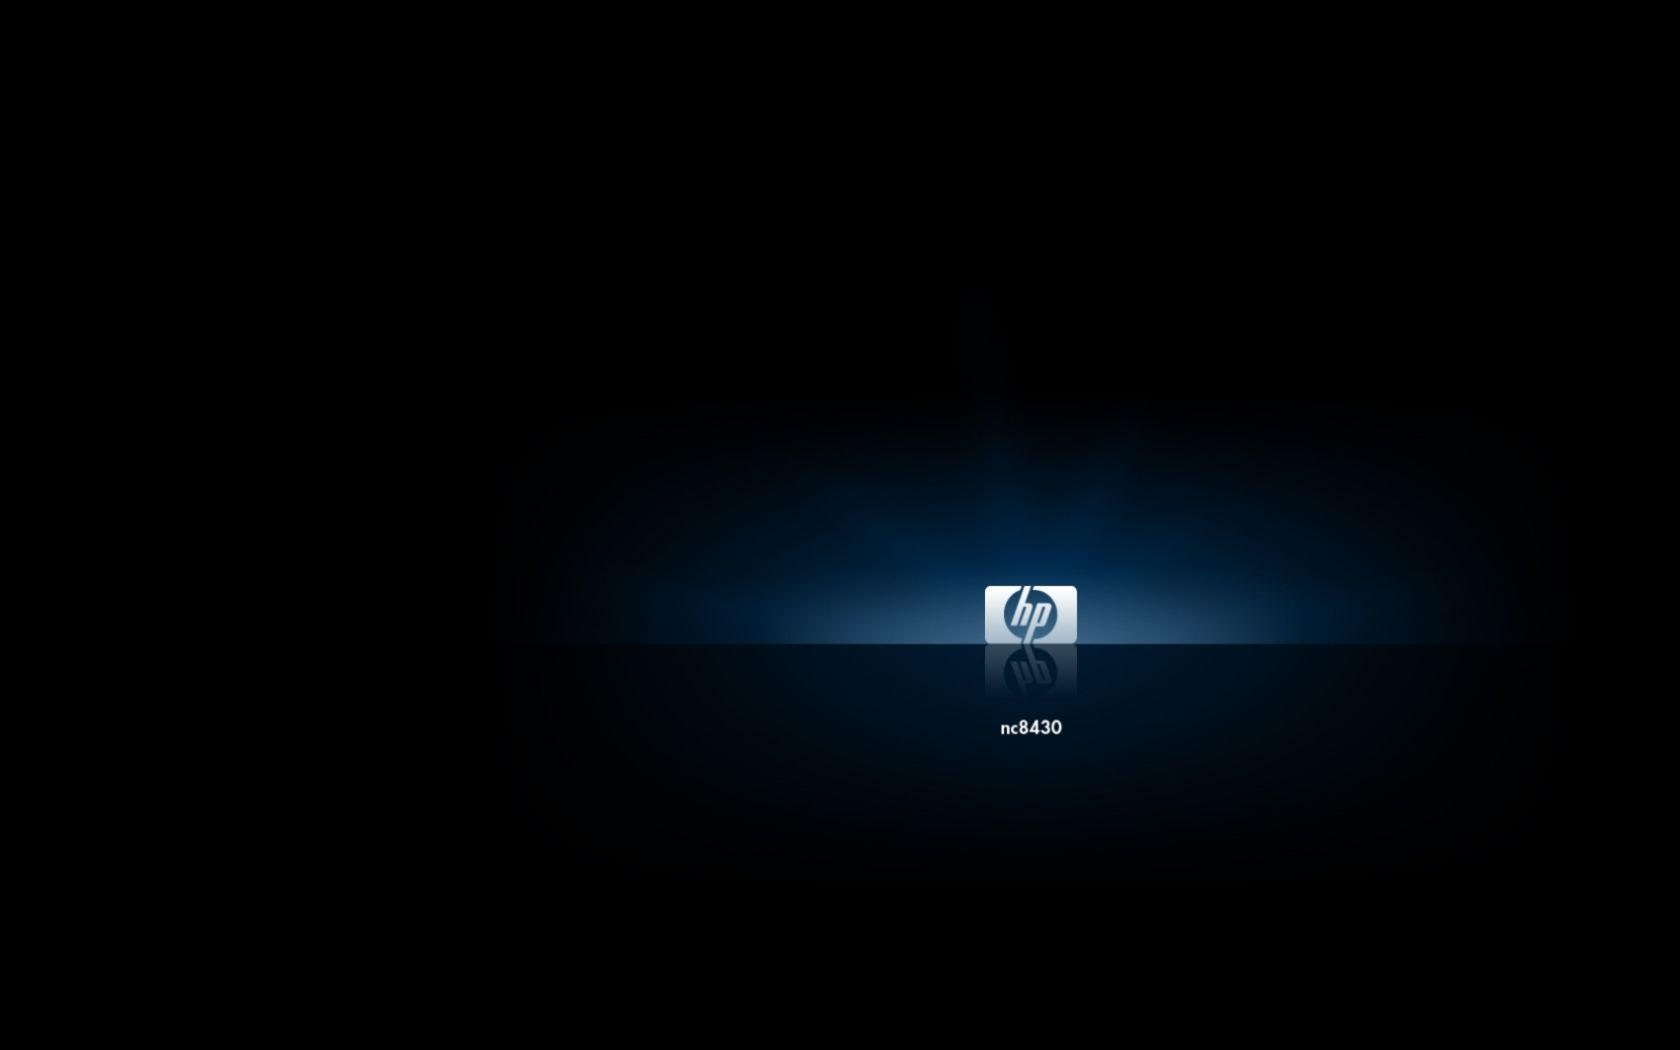 HP Black Wallpapers - Top Free HP Black Backgrounds ...